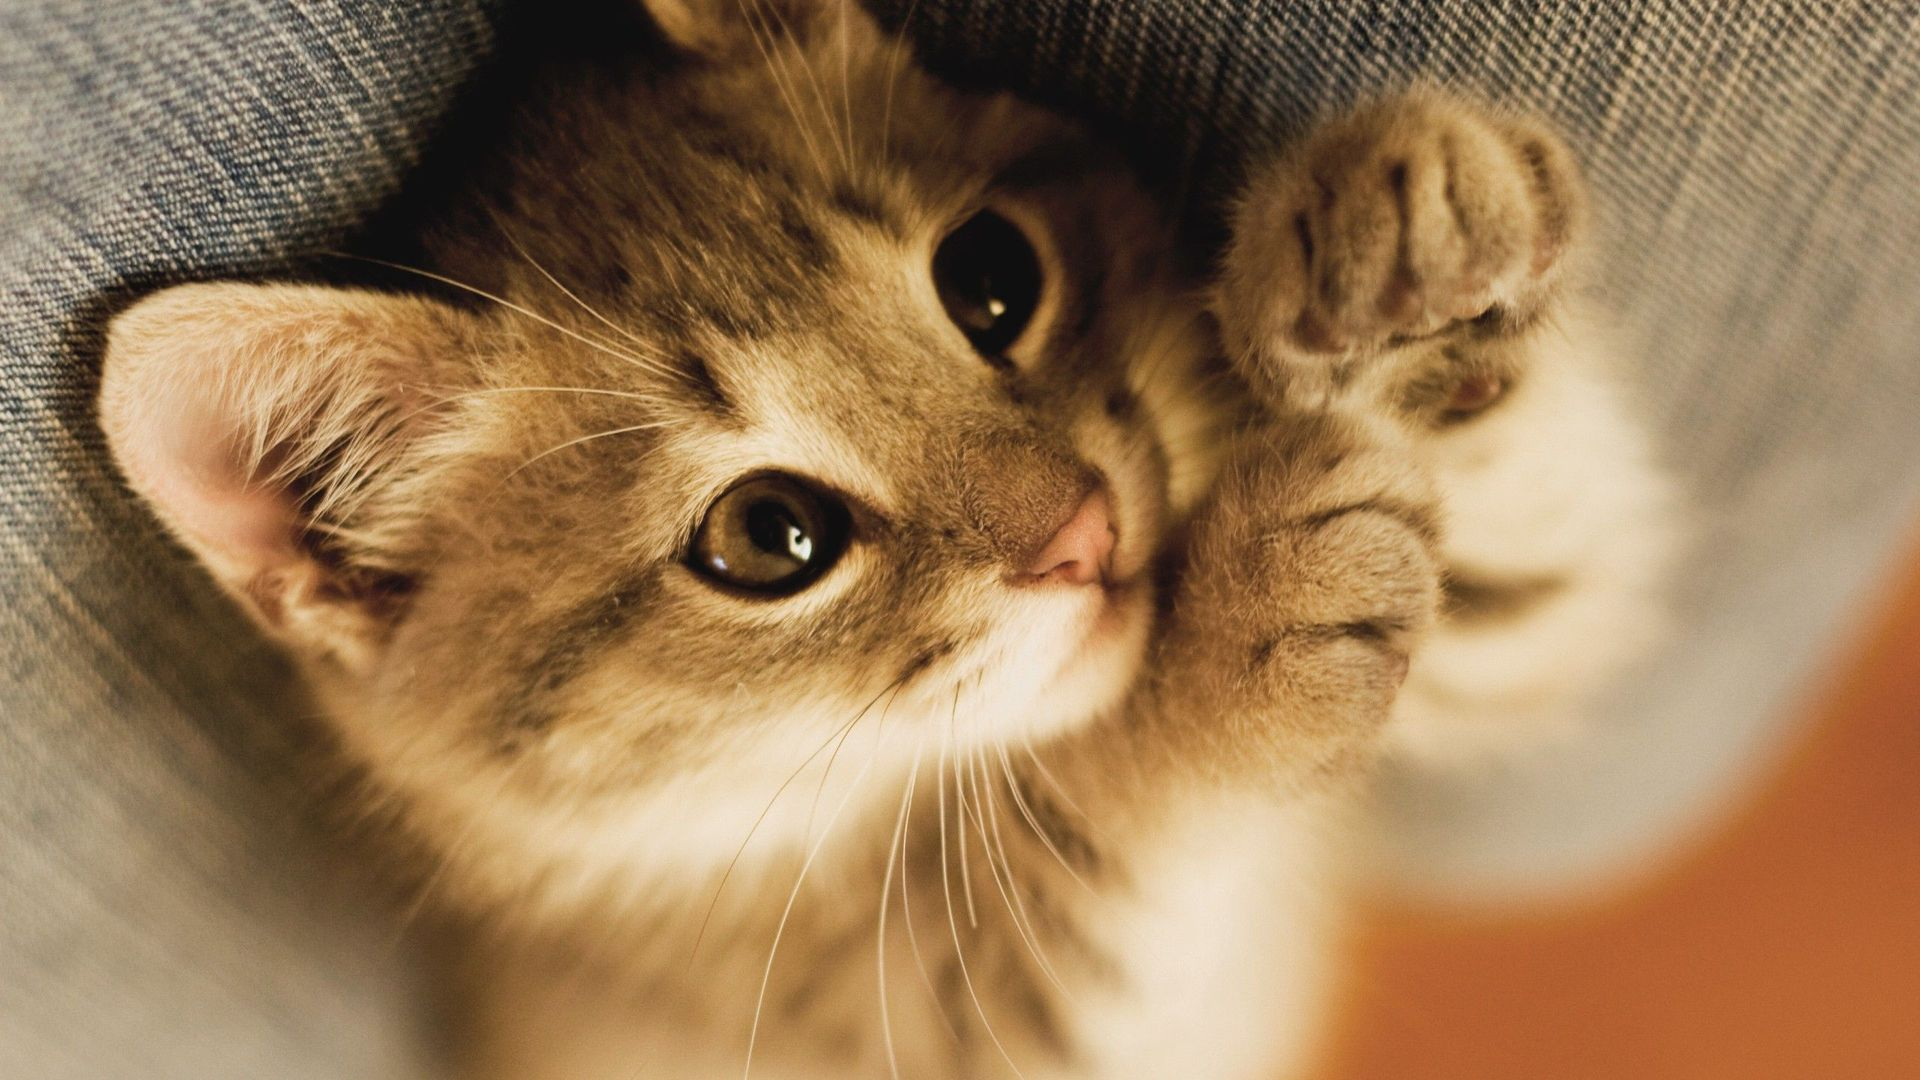 Adorable Cat Close Up Wallpaper